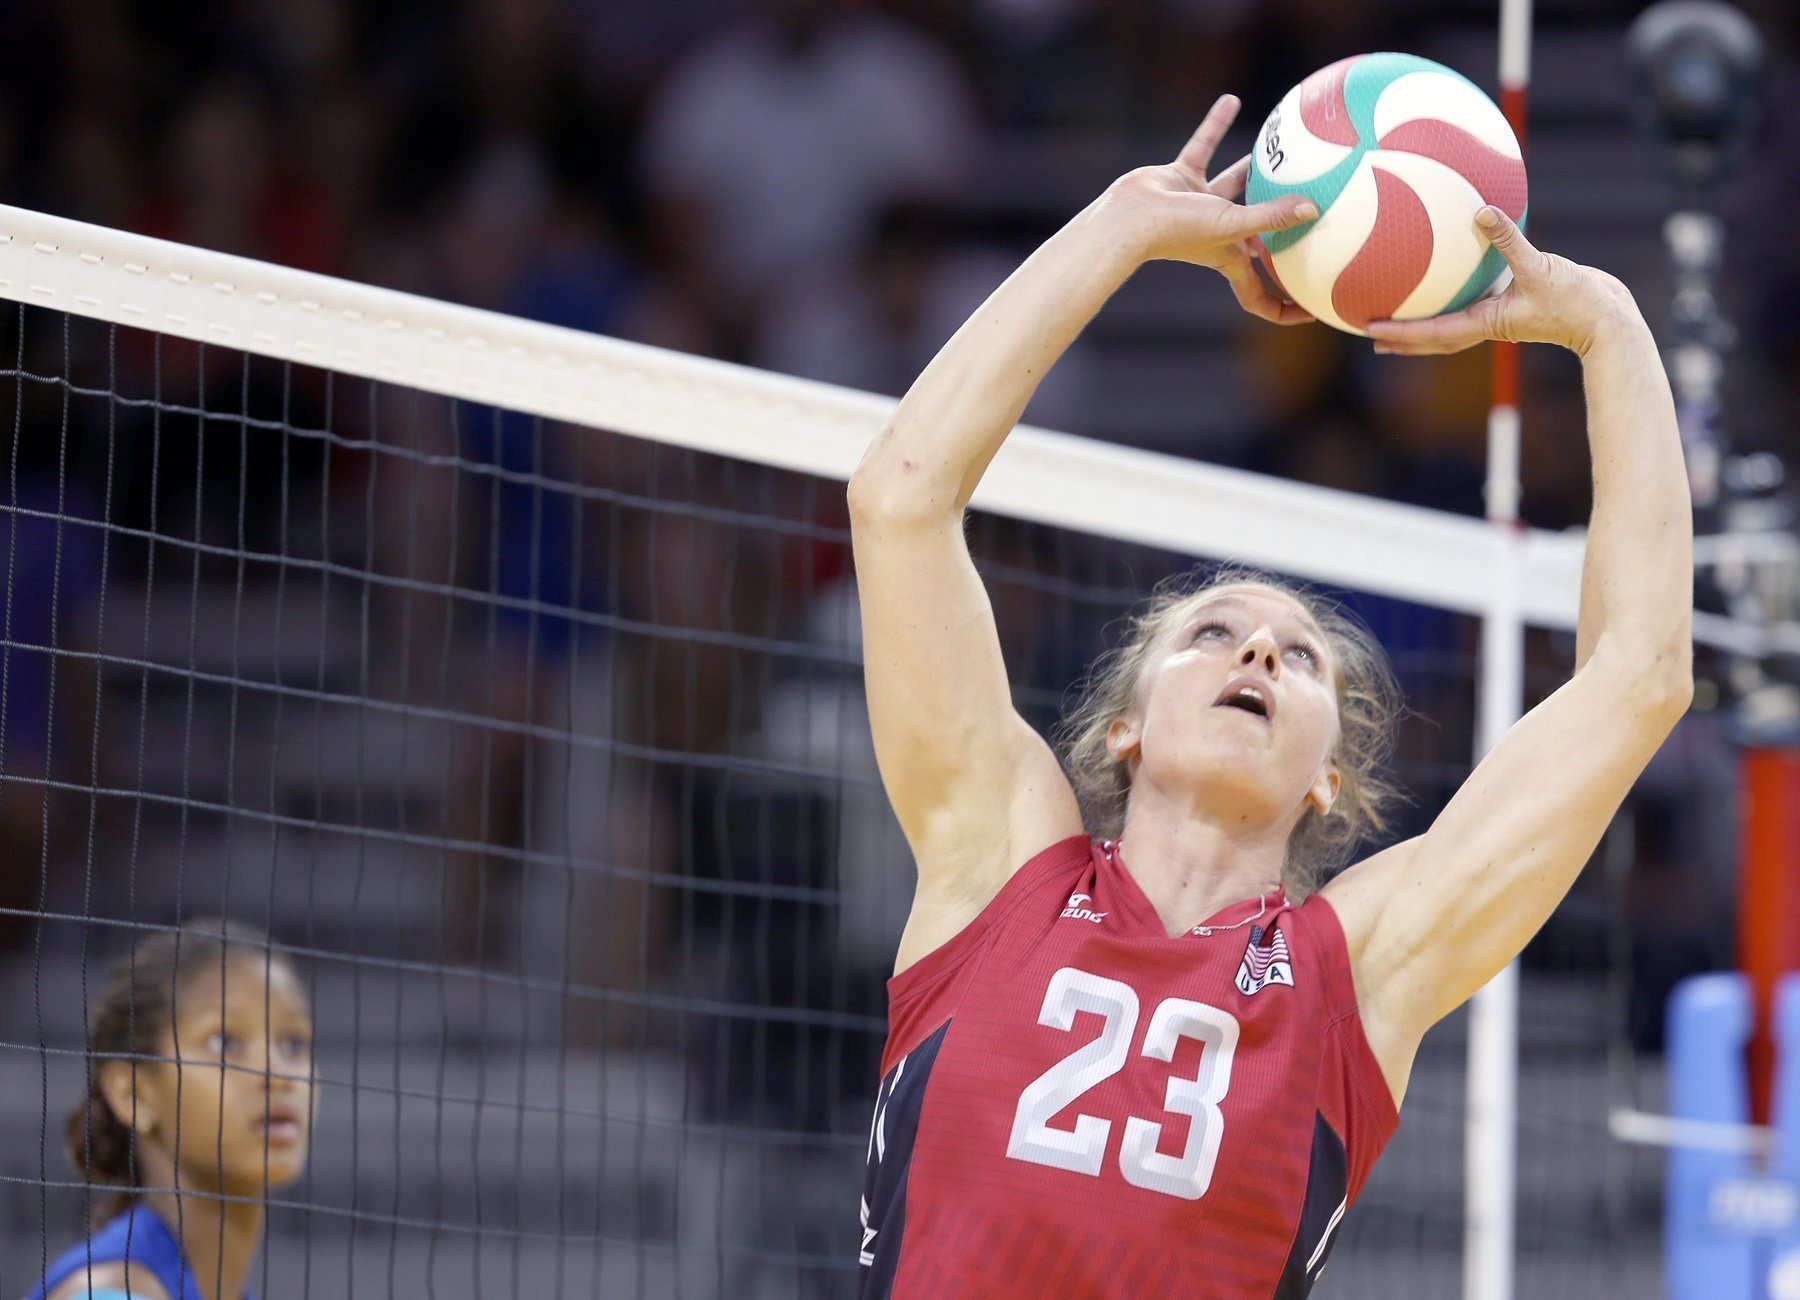 Fallbrook volleyball star tackles depression to chase ...